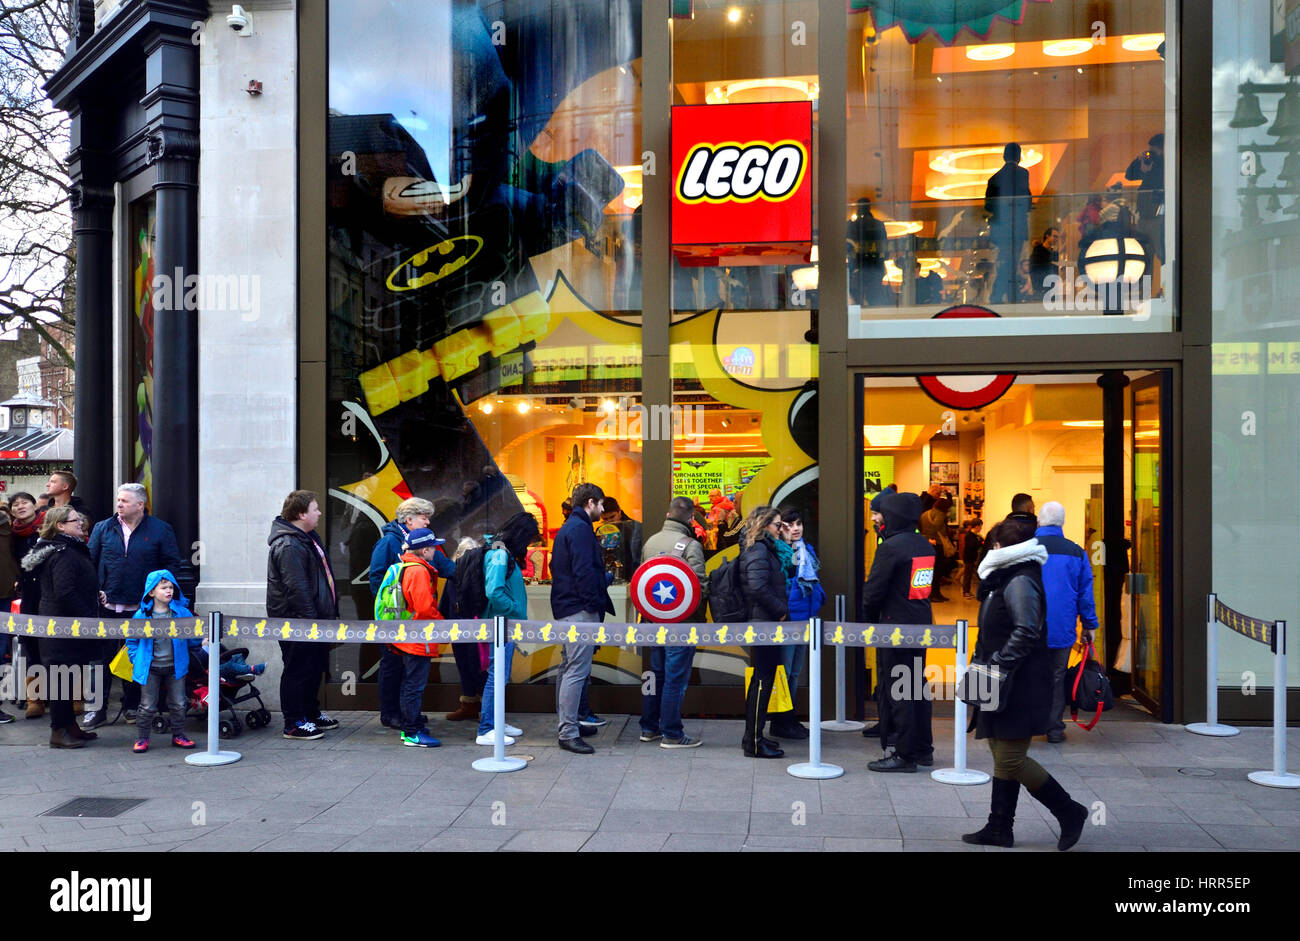 London, England, UK. Queuing outside the Lego Shop, Leicester Square - Stock Image